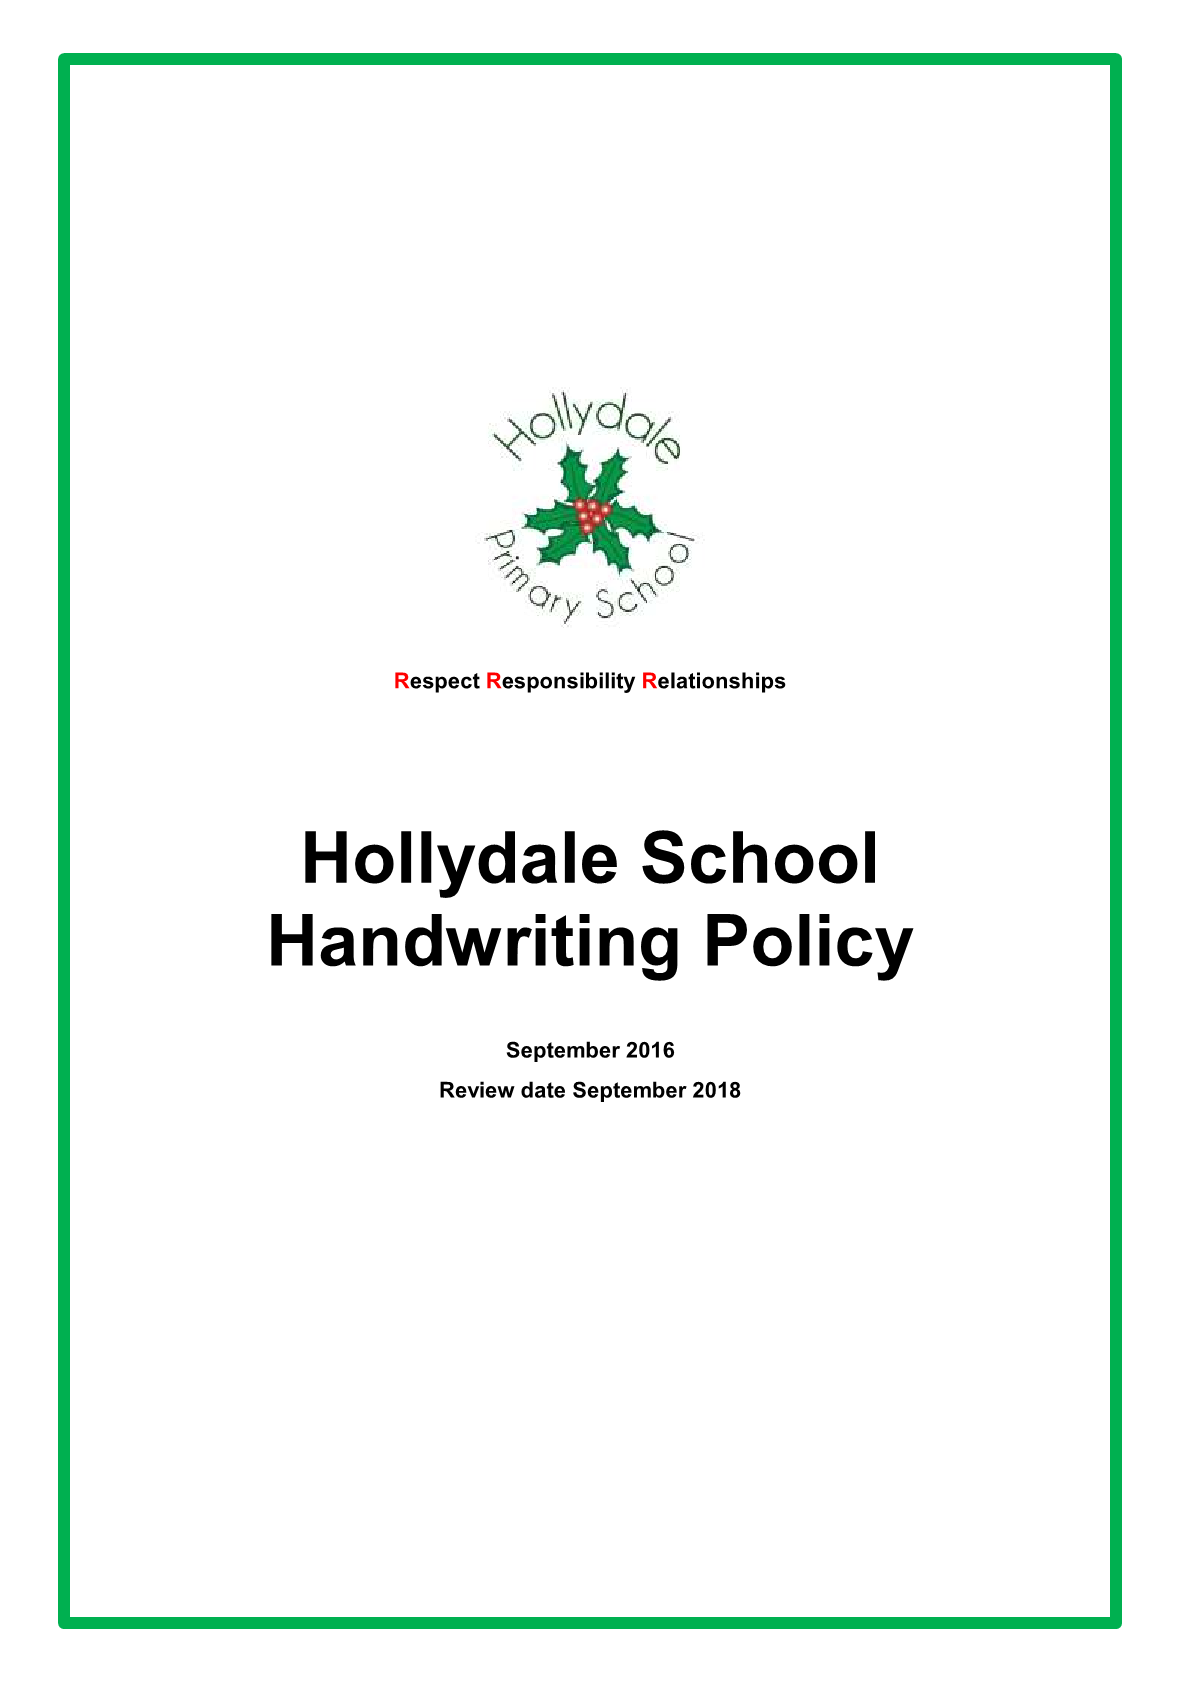 Handwriting Policy